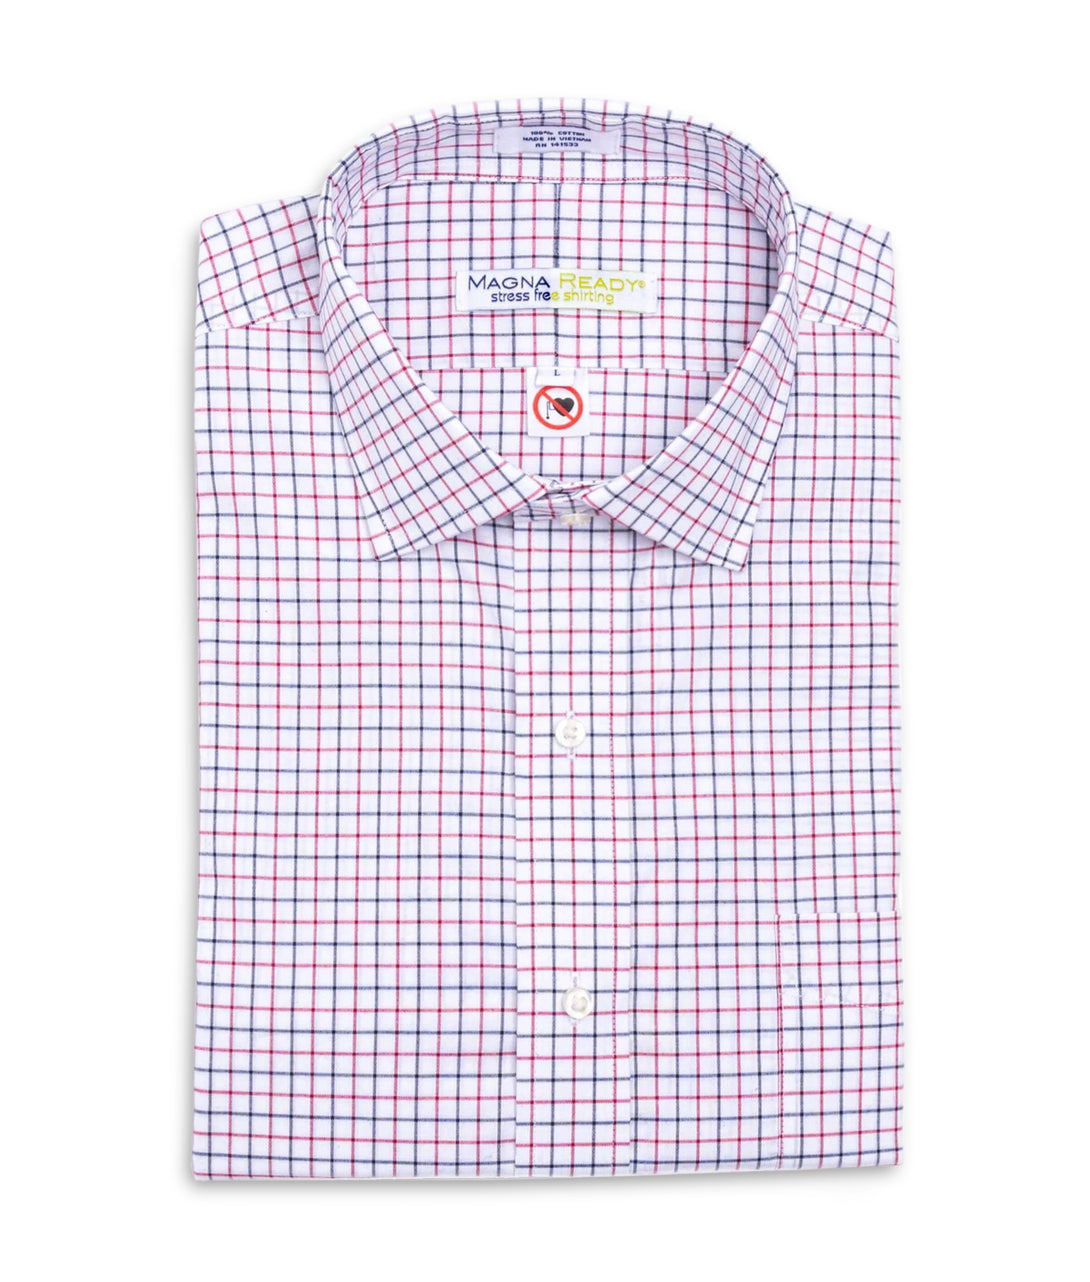 Red, Navy and White Grid Check Long Sleeve Shirt with Magnetic Closures | JUNIPERunltd